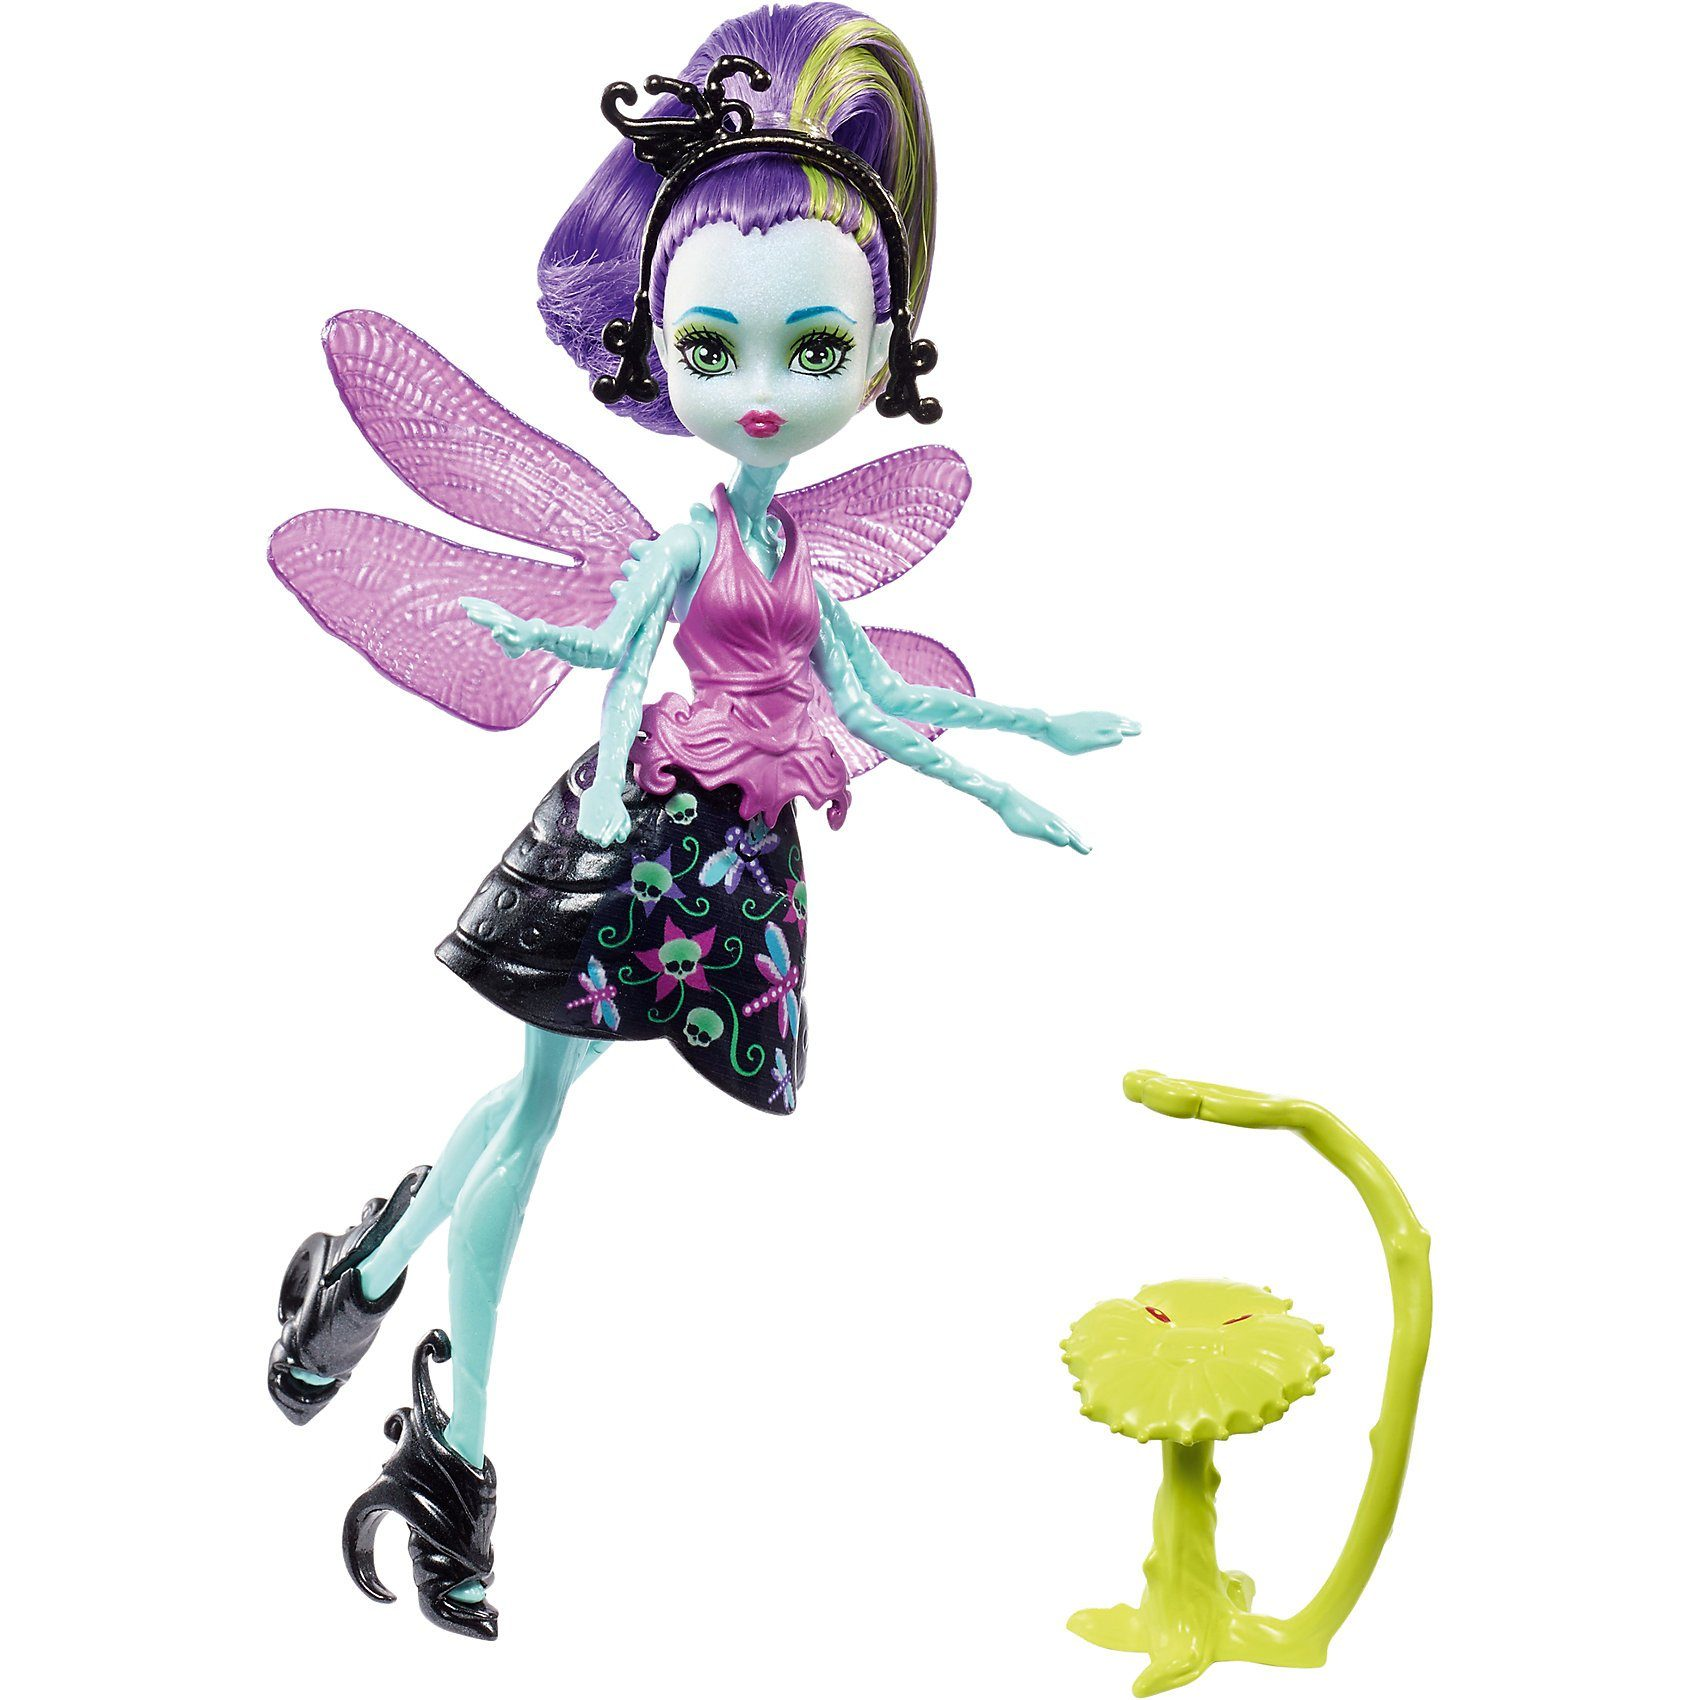 Mattel® Monster High Garten-Monsterfreundinnen Insekt Wingrid - Eine